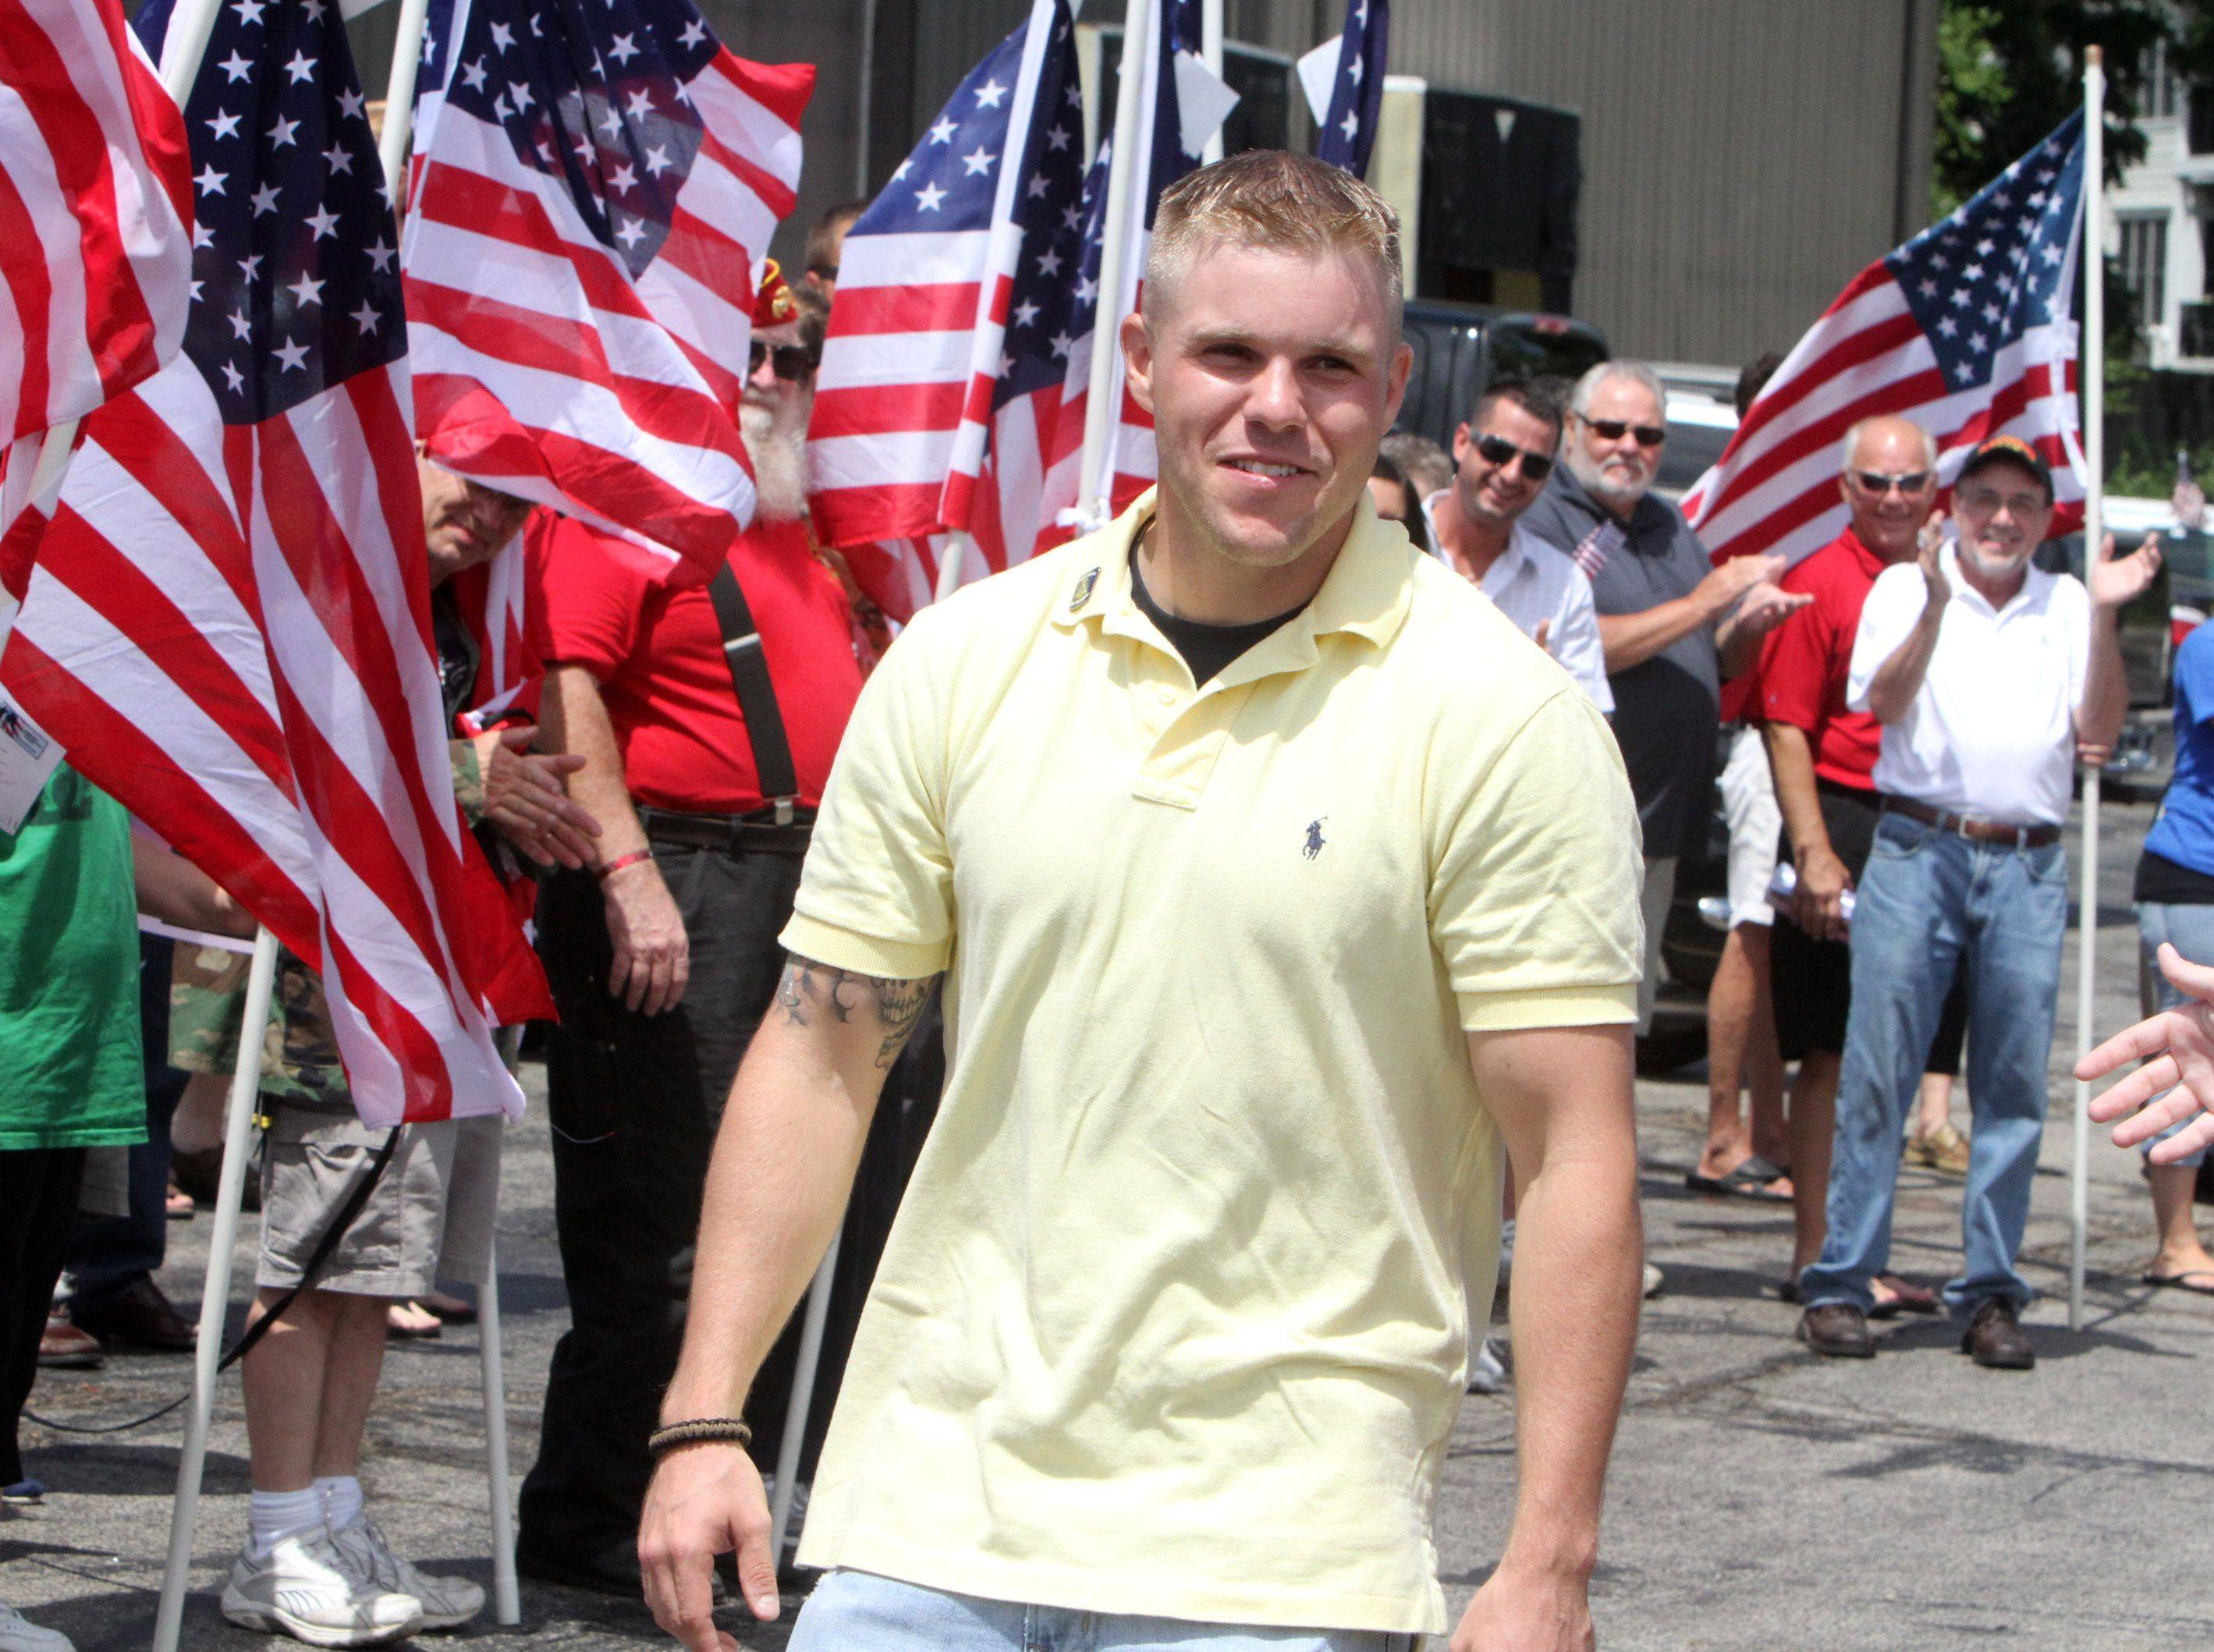 Libertyville resident Lance Corporal Kevin Cronin reacts to the large crowd that attended his homecoming parade which stepped off at Century Electric Supply in Libertyville and traveled west on Peterson Road to Austin�s Saloon and Eatery.